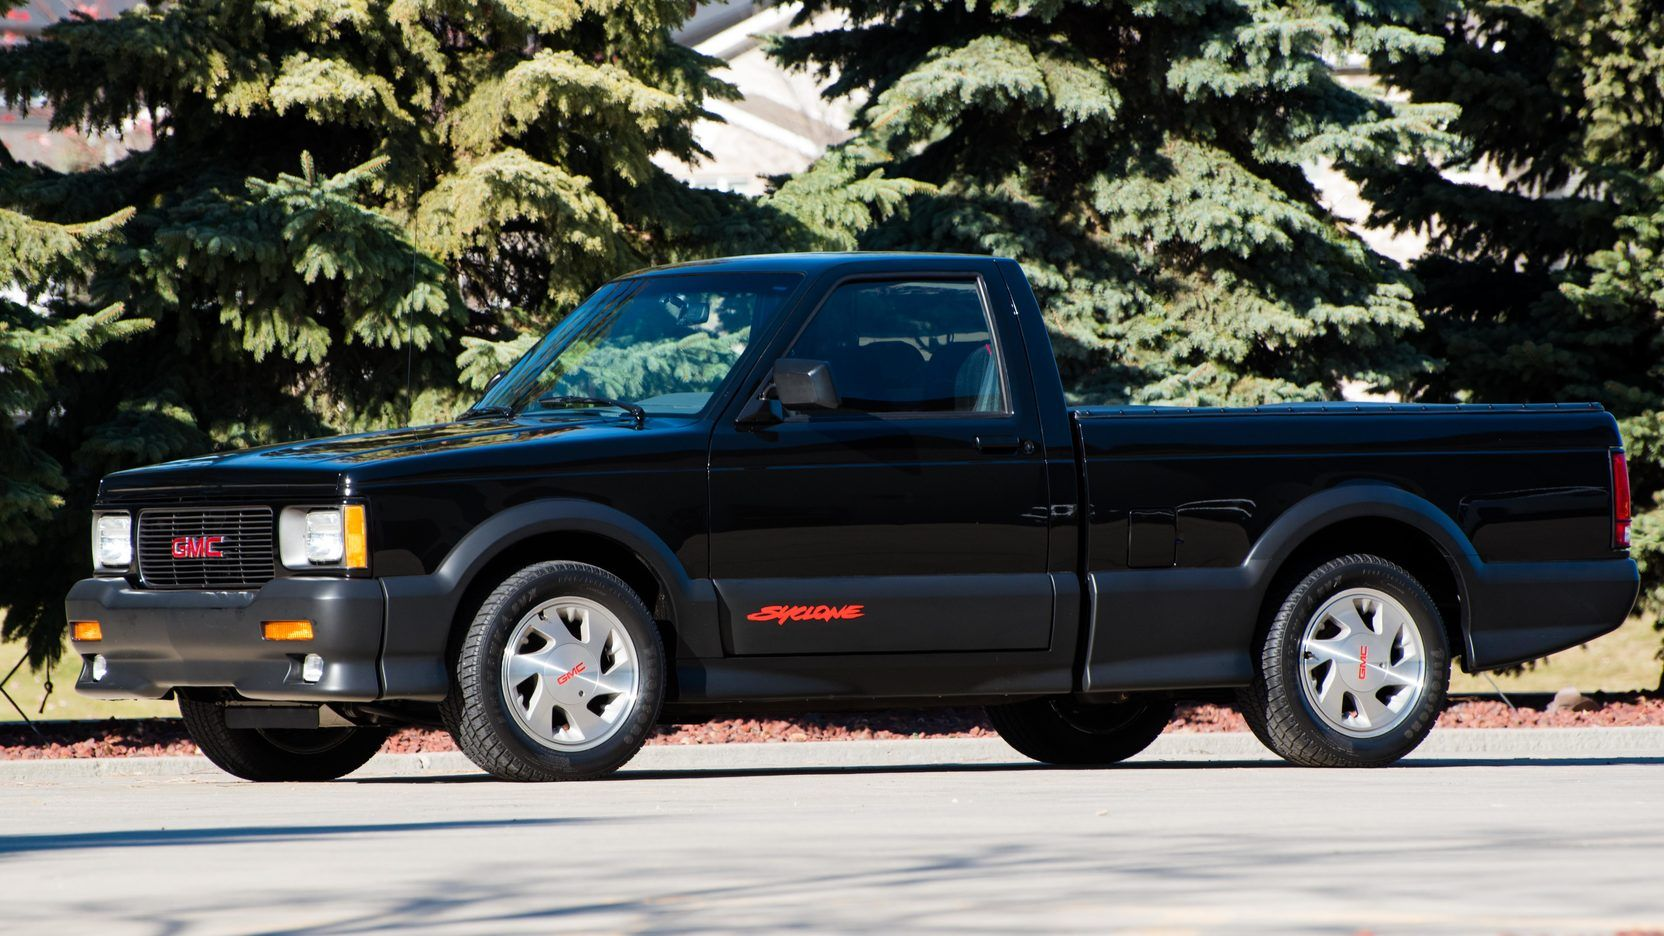 1991 Gmc Syclone Pickup Gmc Gmc Trucks Kissimmee